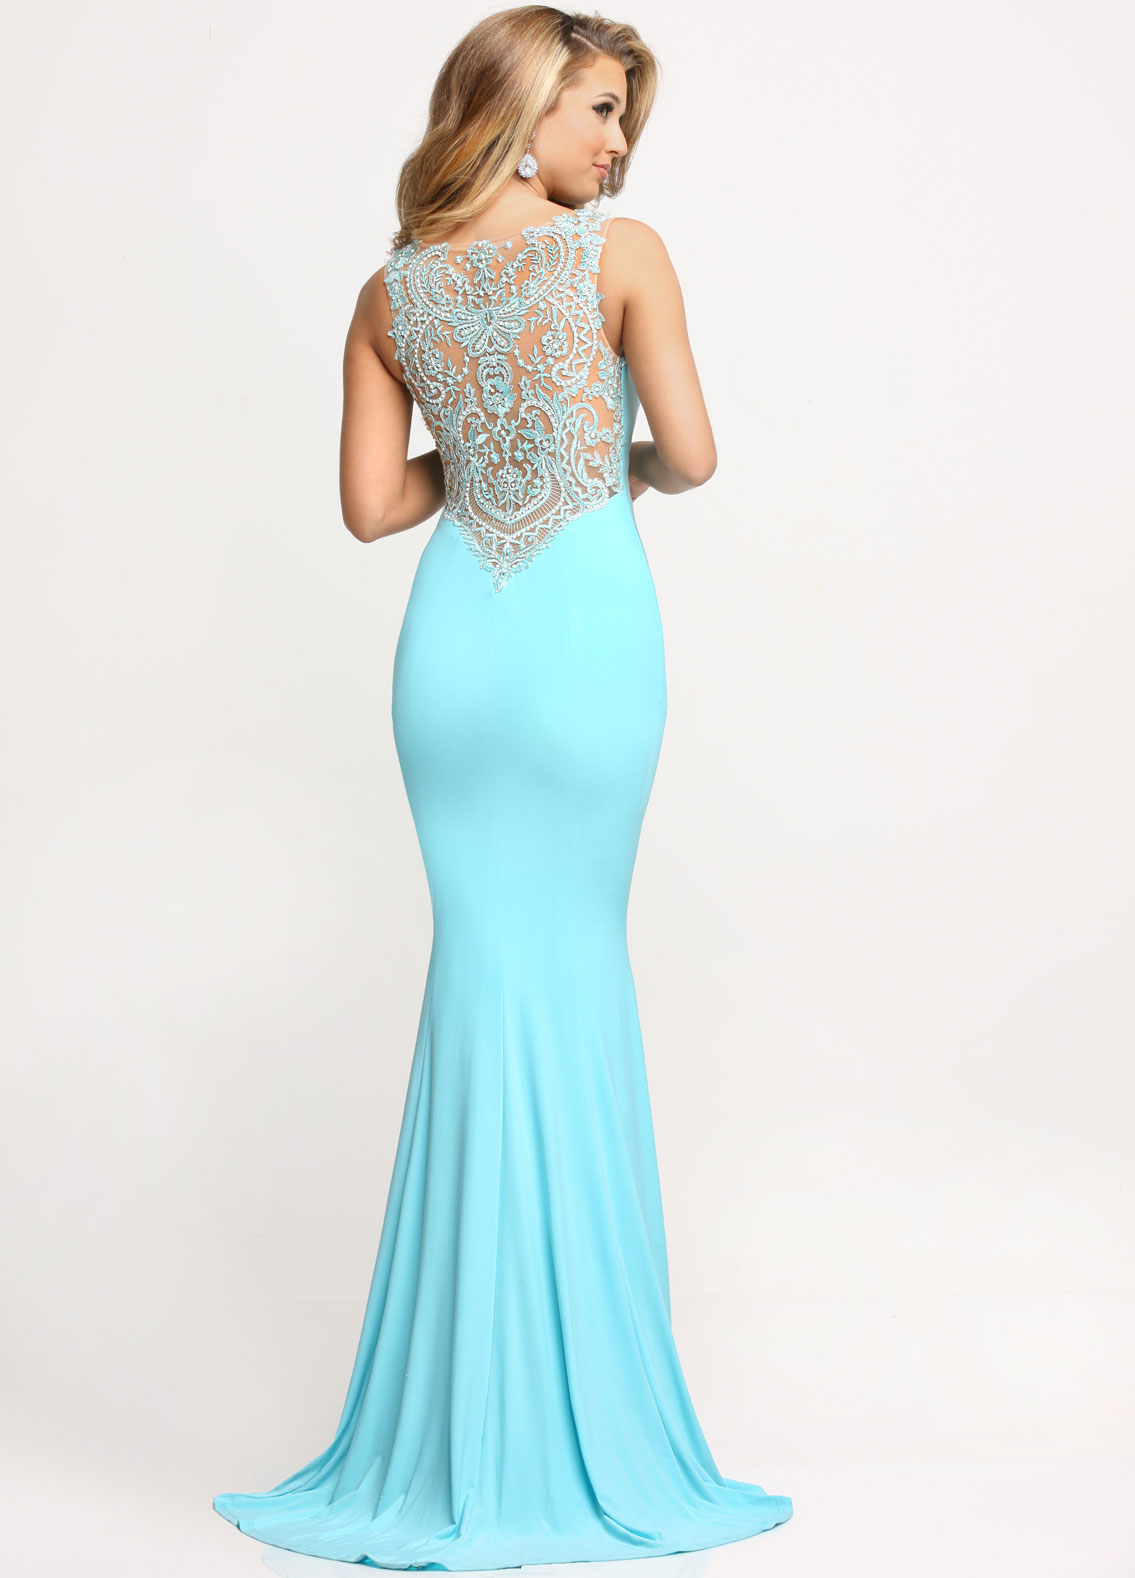 Image showing back view of style #71644